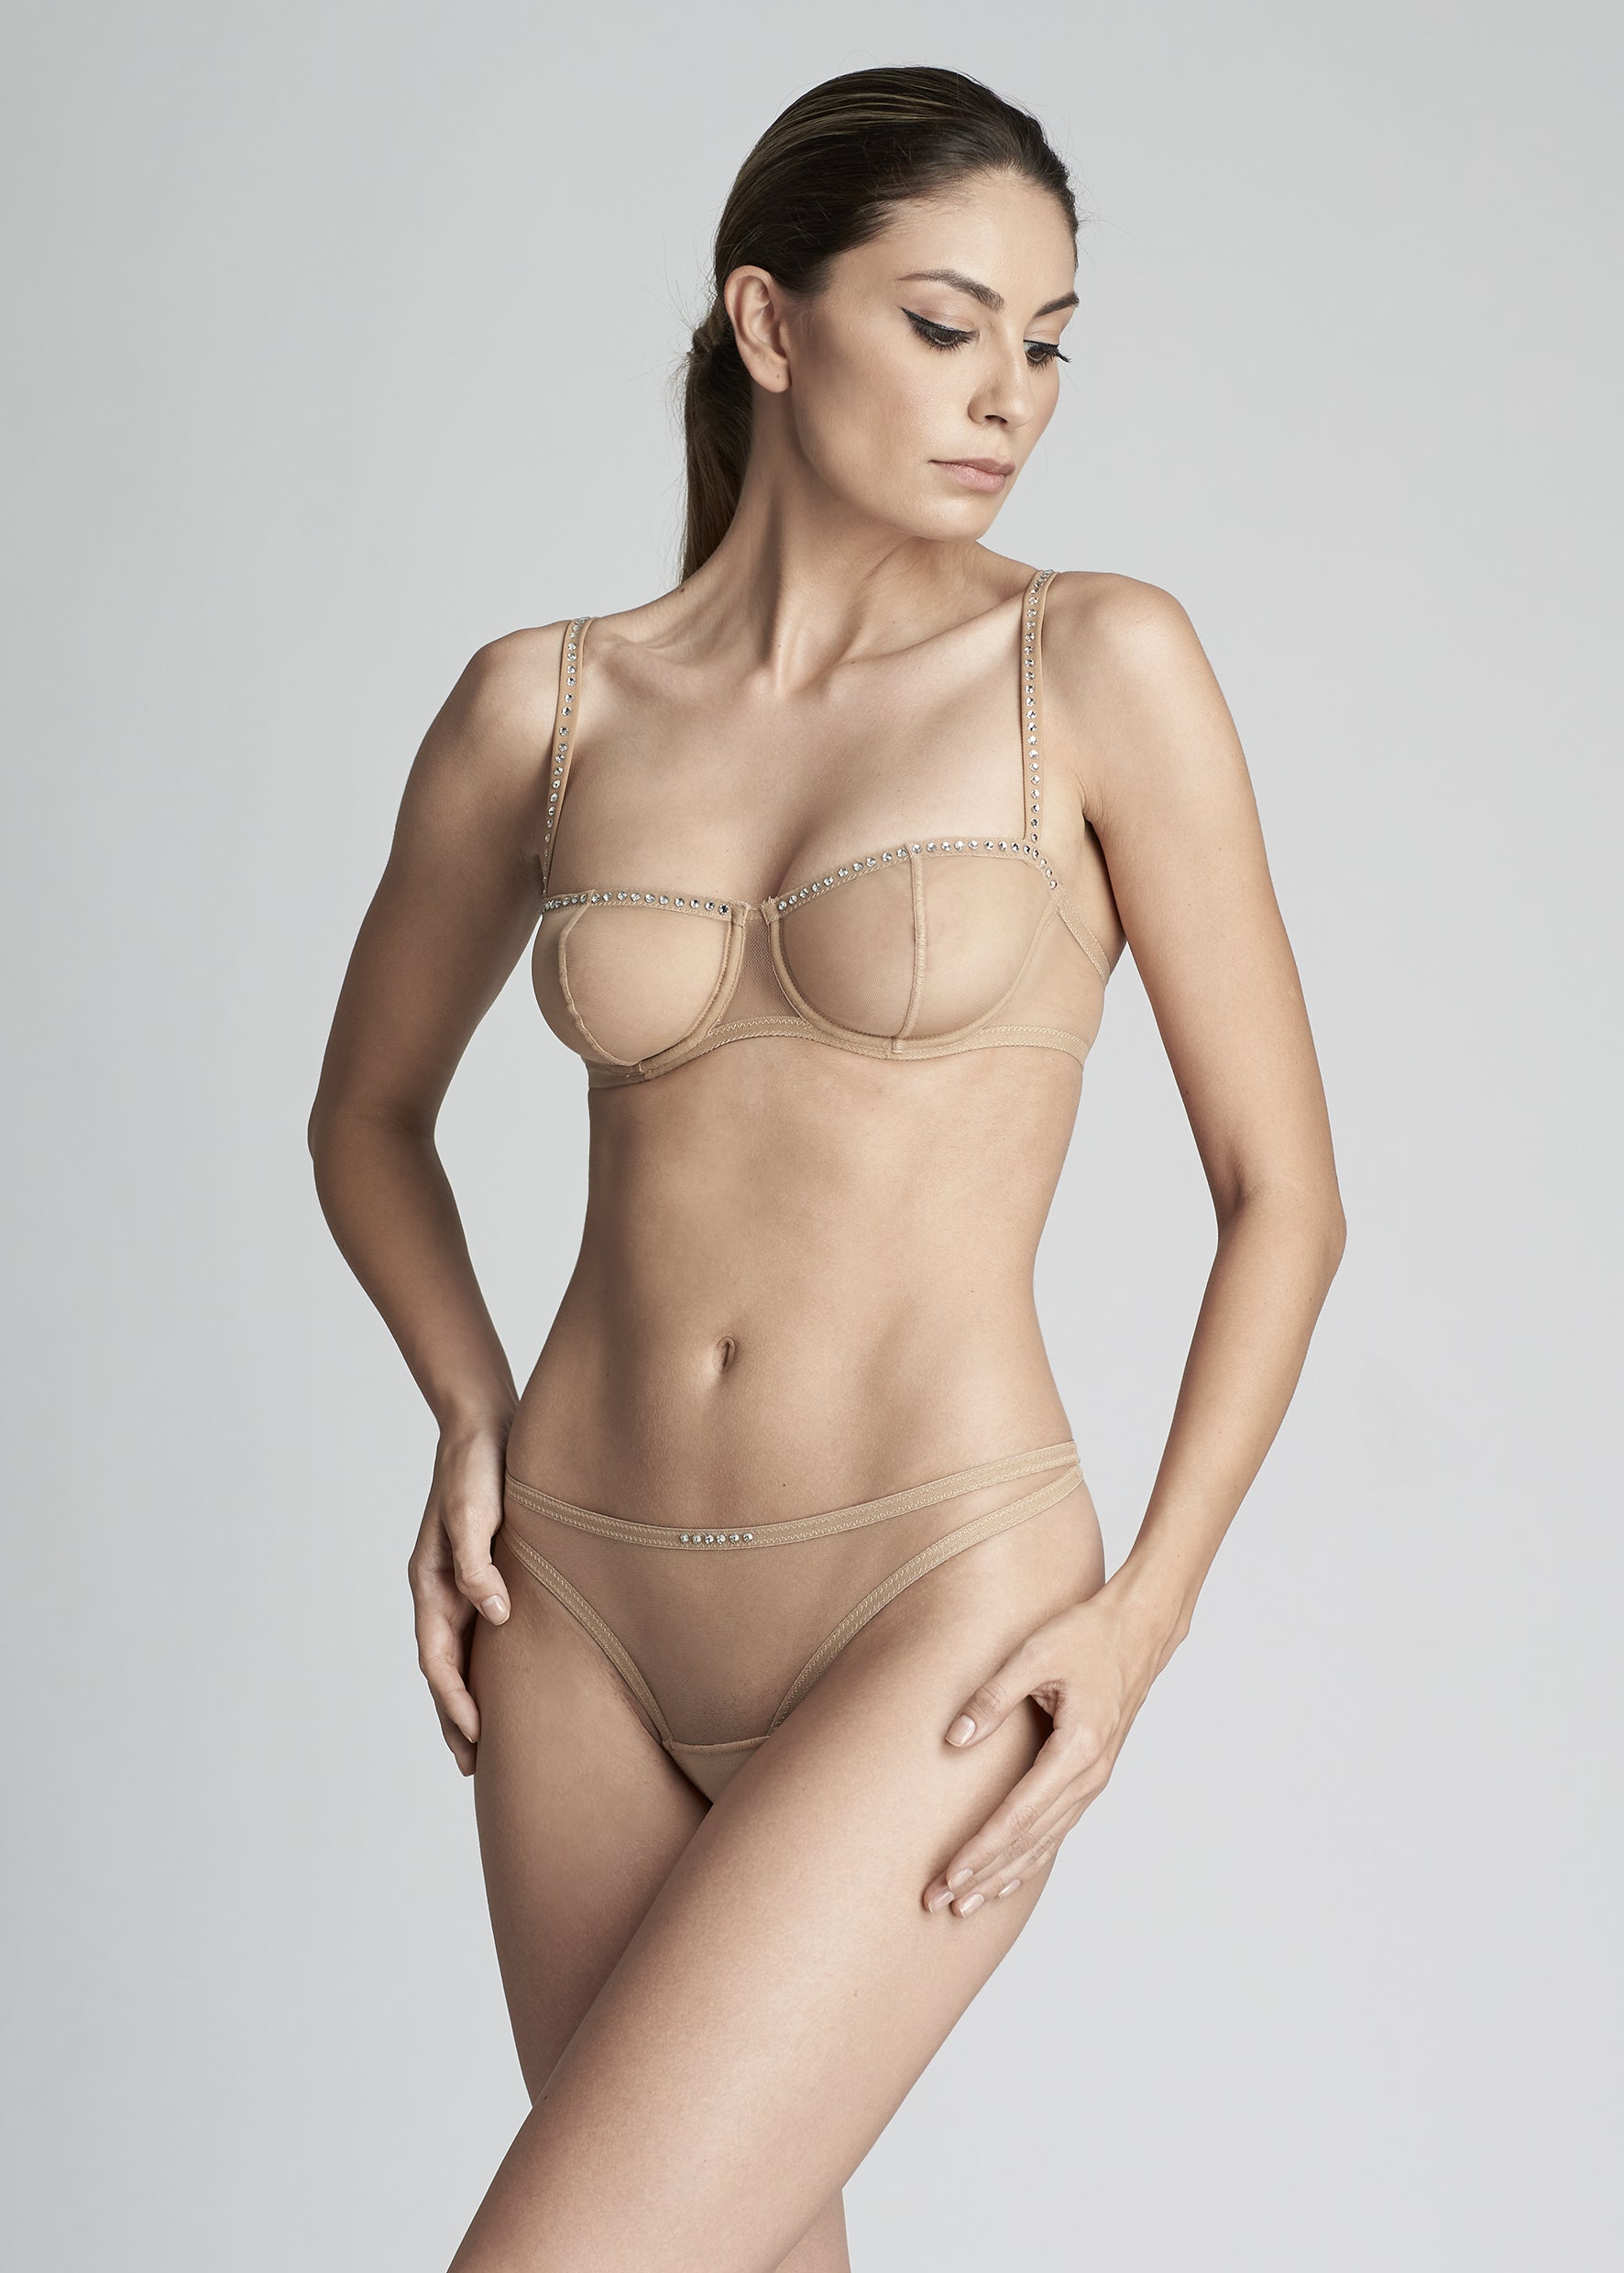 Nuit Interdit Balconette Bra with Swarovski Crystals in Nude